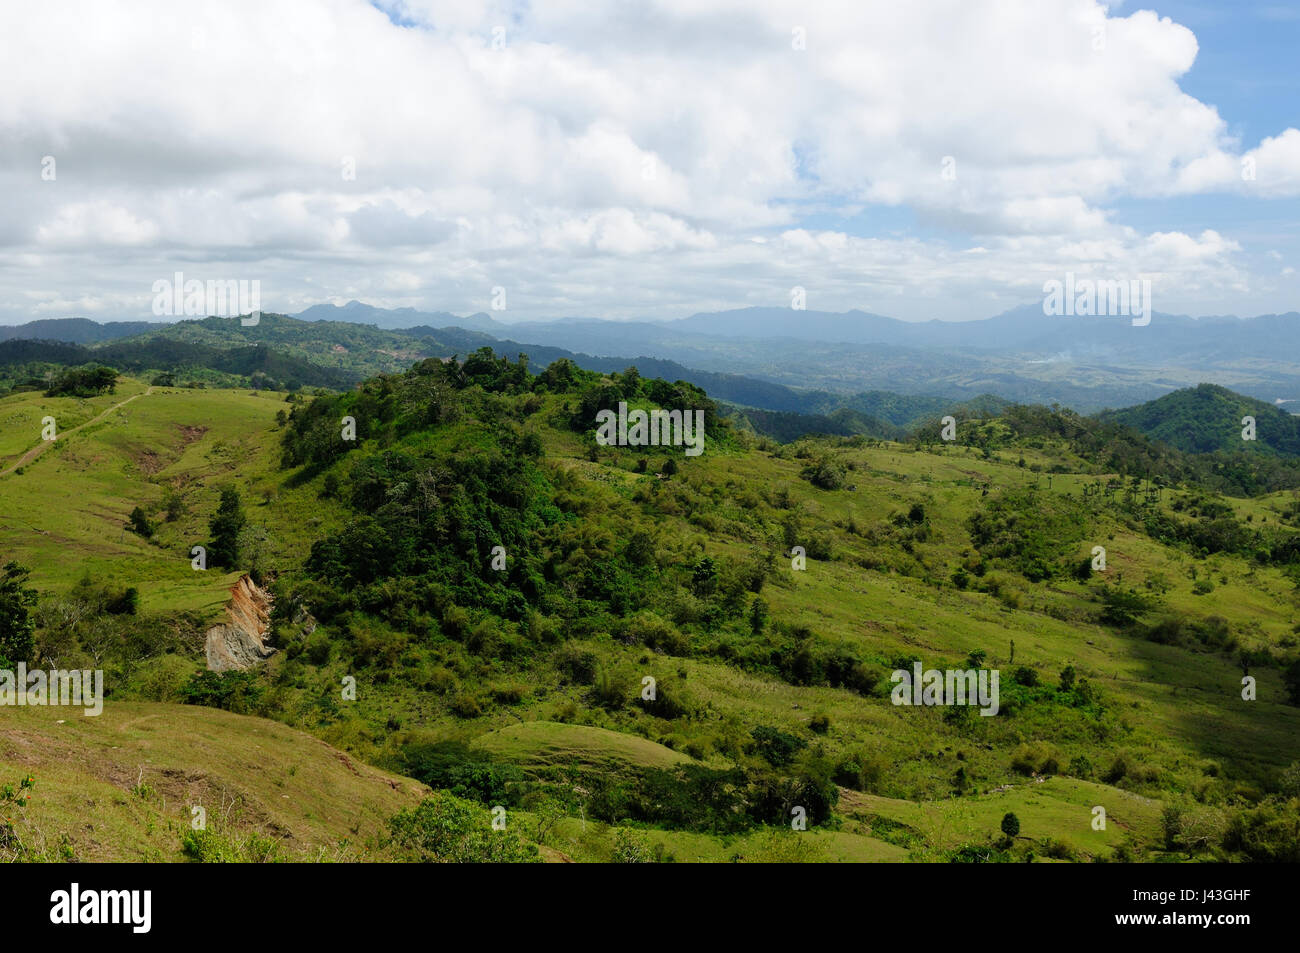 Typical hills landscape on an island Timor in Indonesia - Stock Image